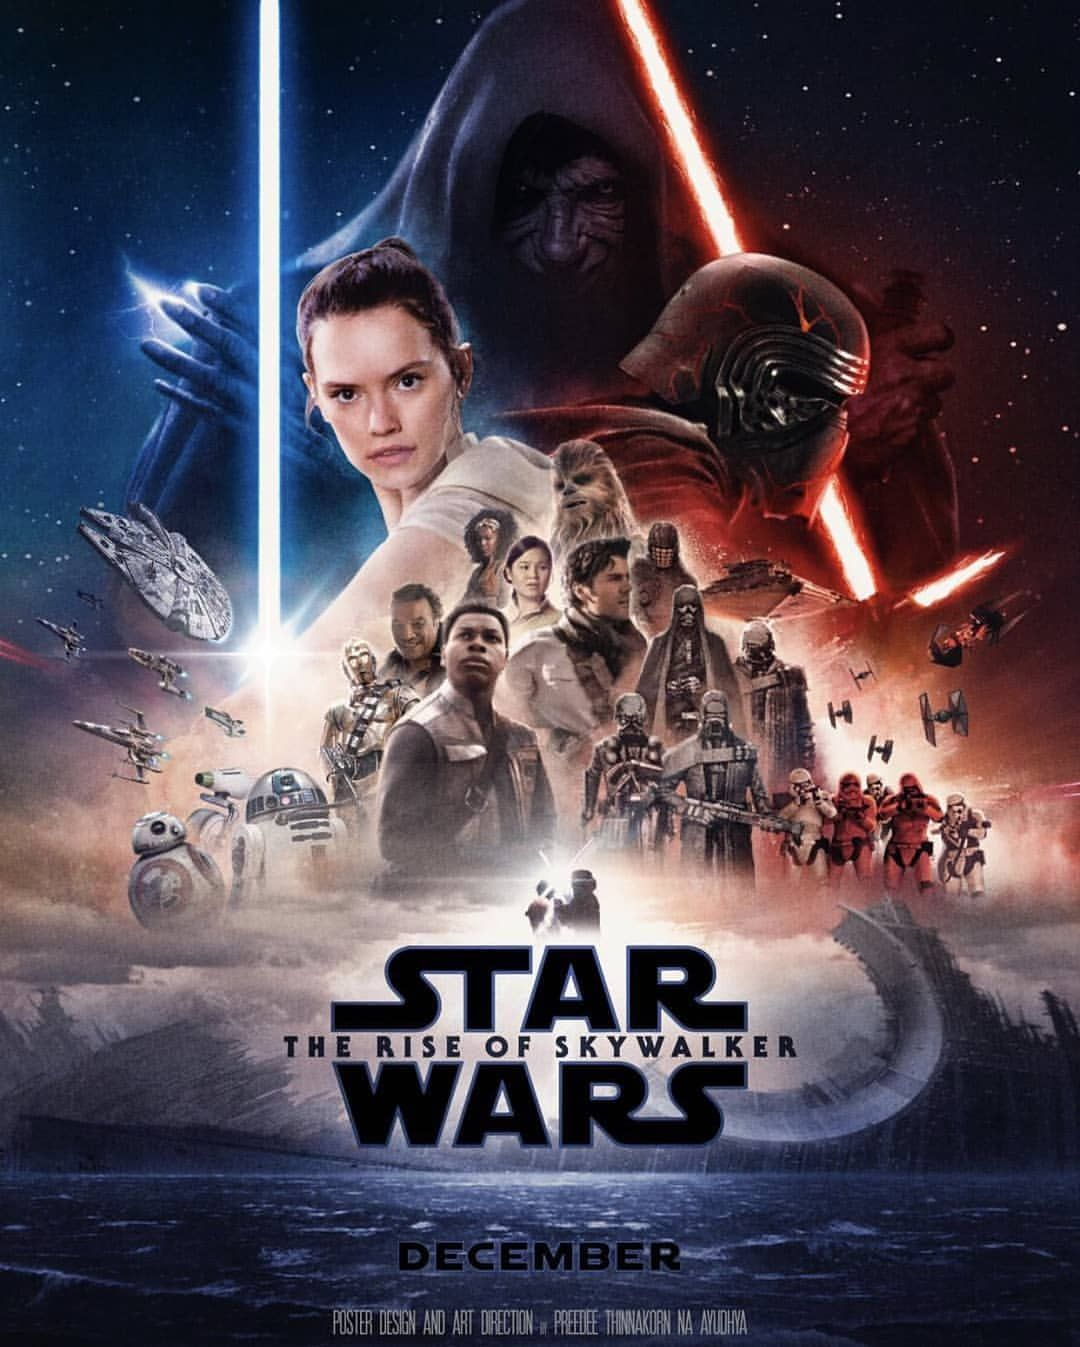 Star Wars Episode Ix The Rise Of Skywalker Poster Art B Star Wars Episodes Star Wars Film Star Wars Movies Posters